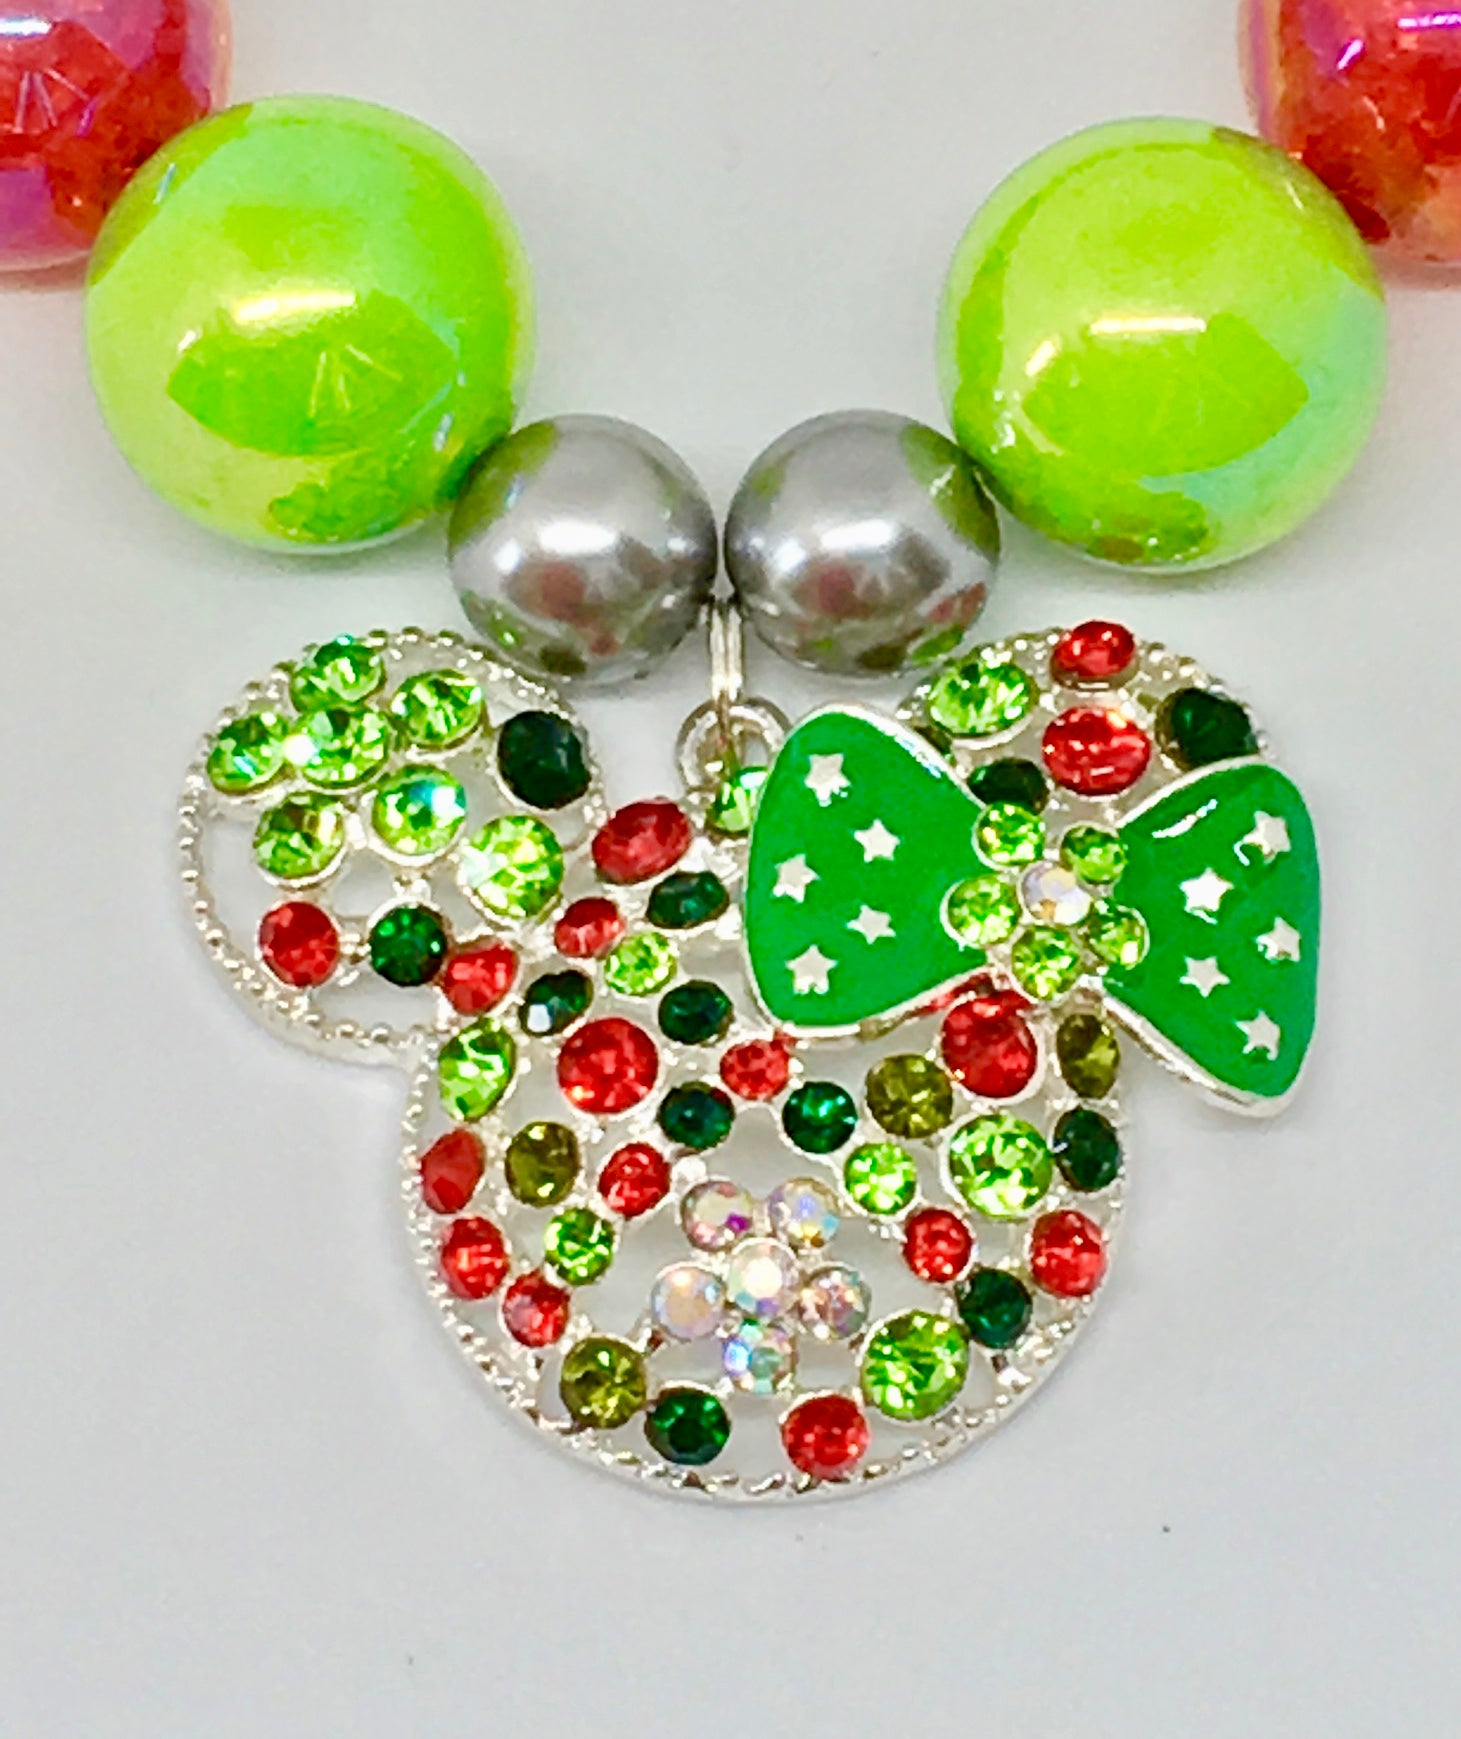 Disneys' Mickey Mouse green